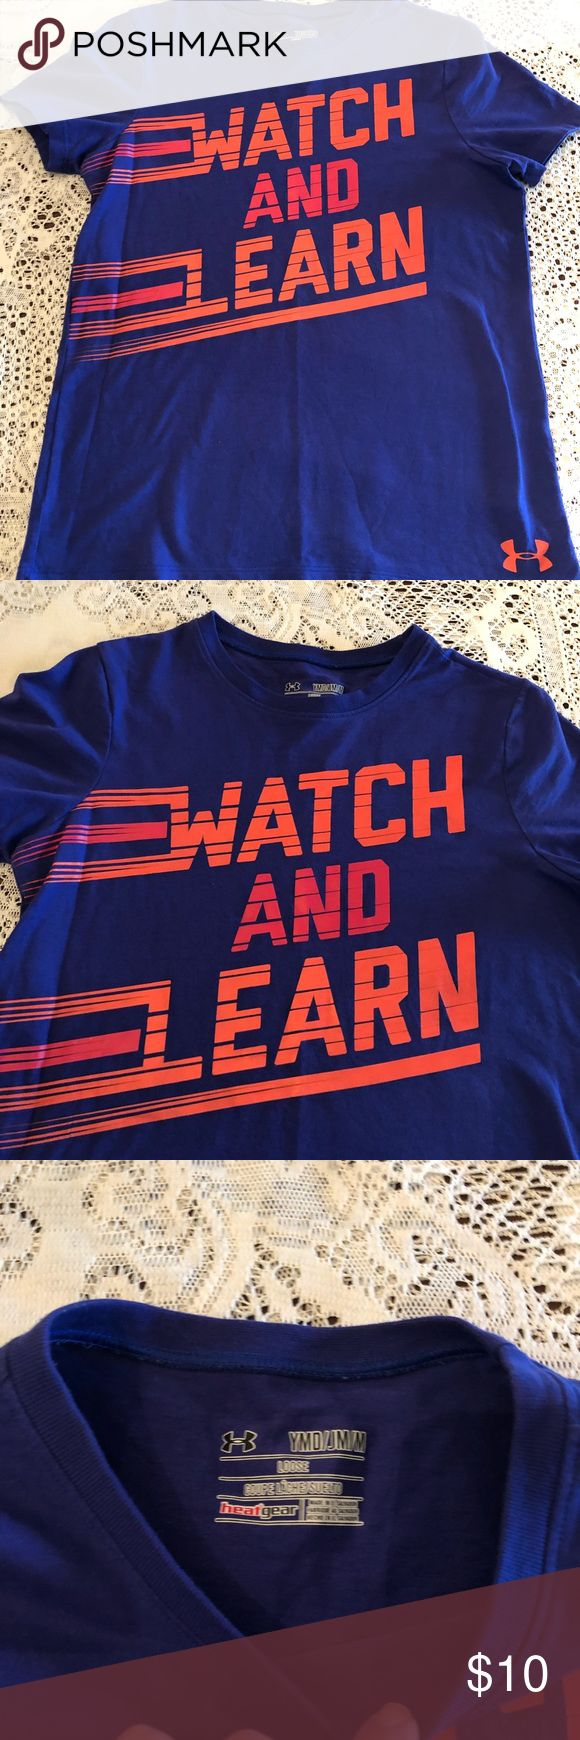 Under Armour girls t shirt EUC youth medium Under Armour girls t shirt EUC youth medium No holes or stains see pics Under Armour Shirts & Tops Tees - Short Sleeve